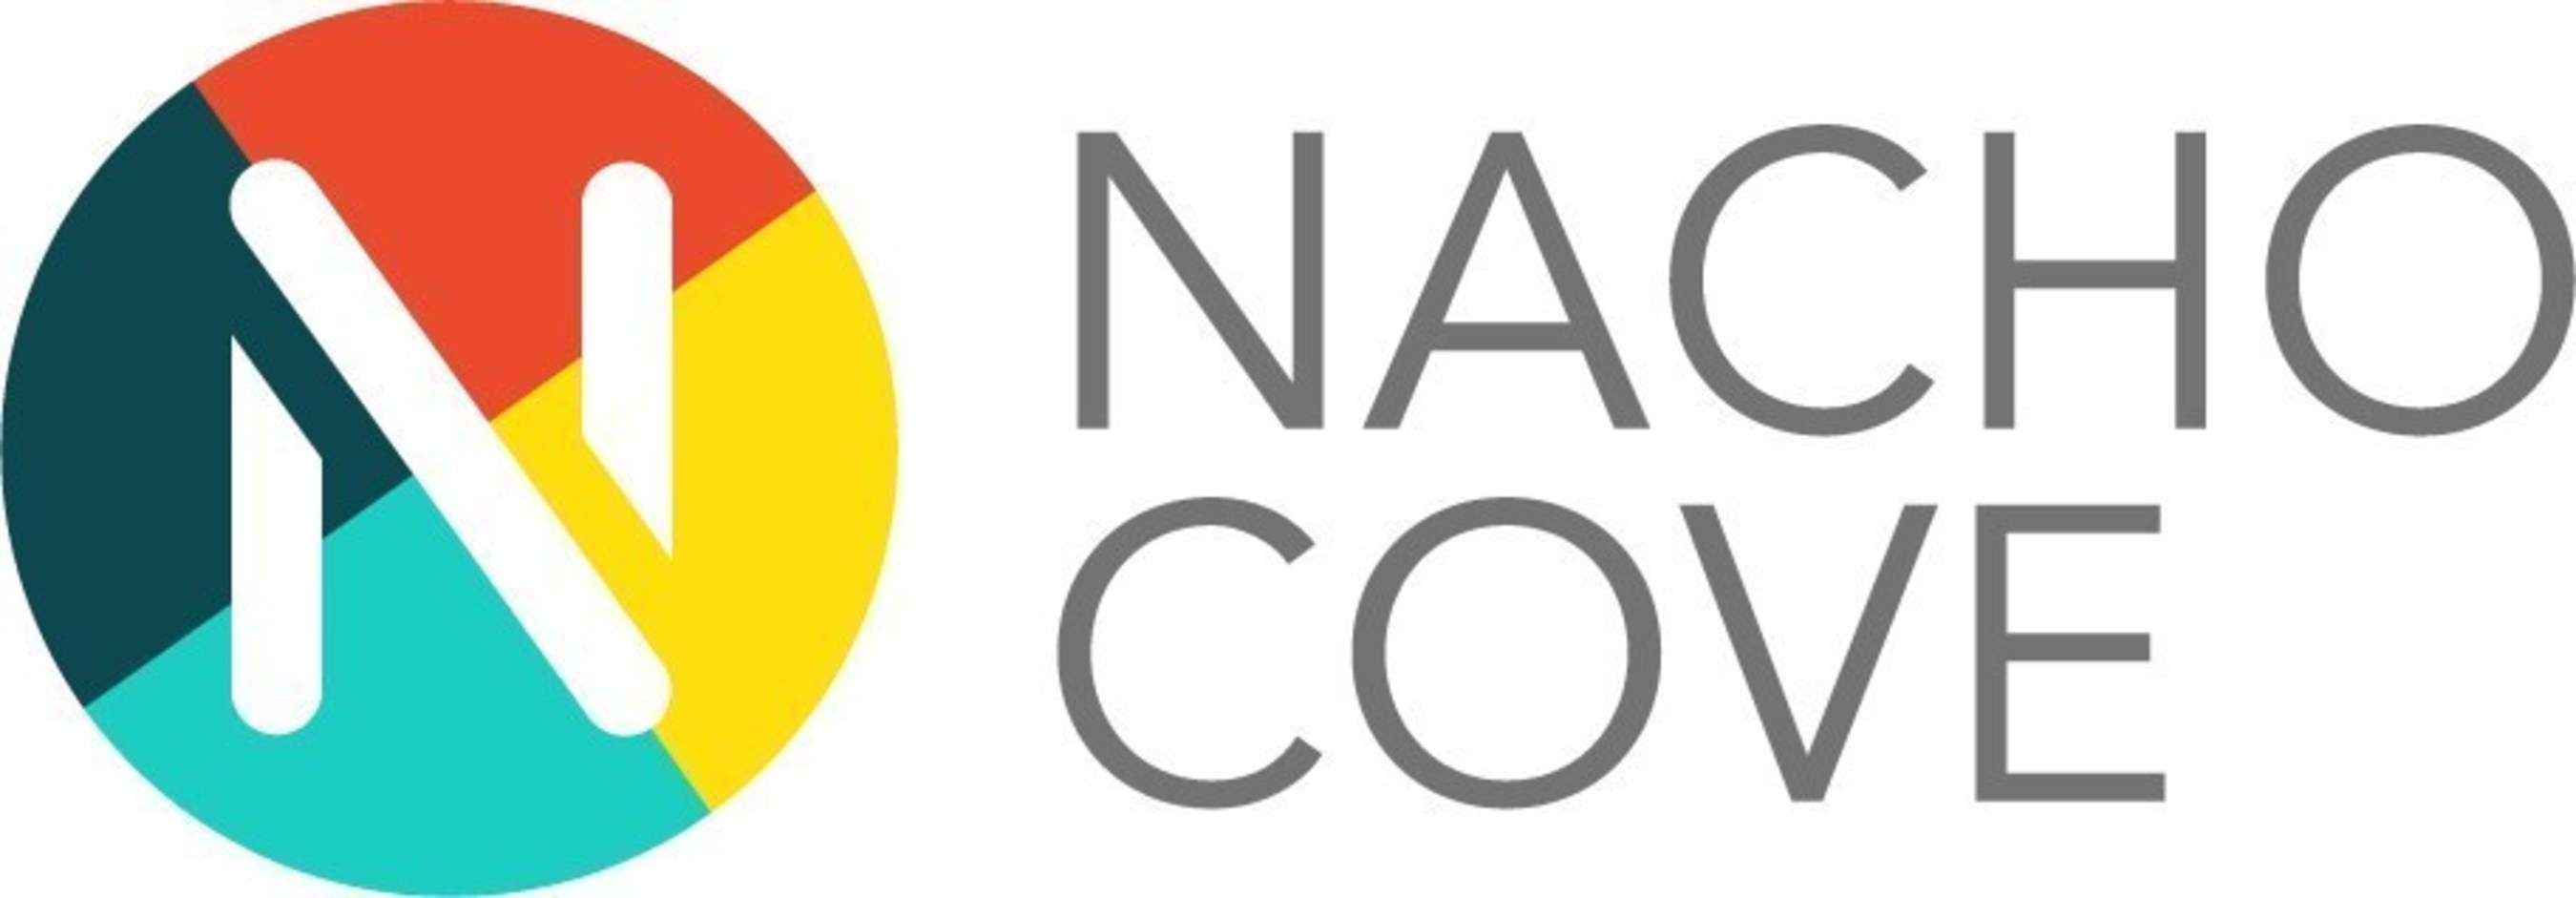 Nacho Cove delivers the best enterprise email client with security and artificial intelligence. Available on ...